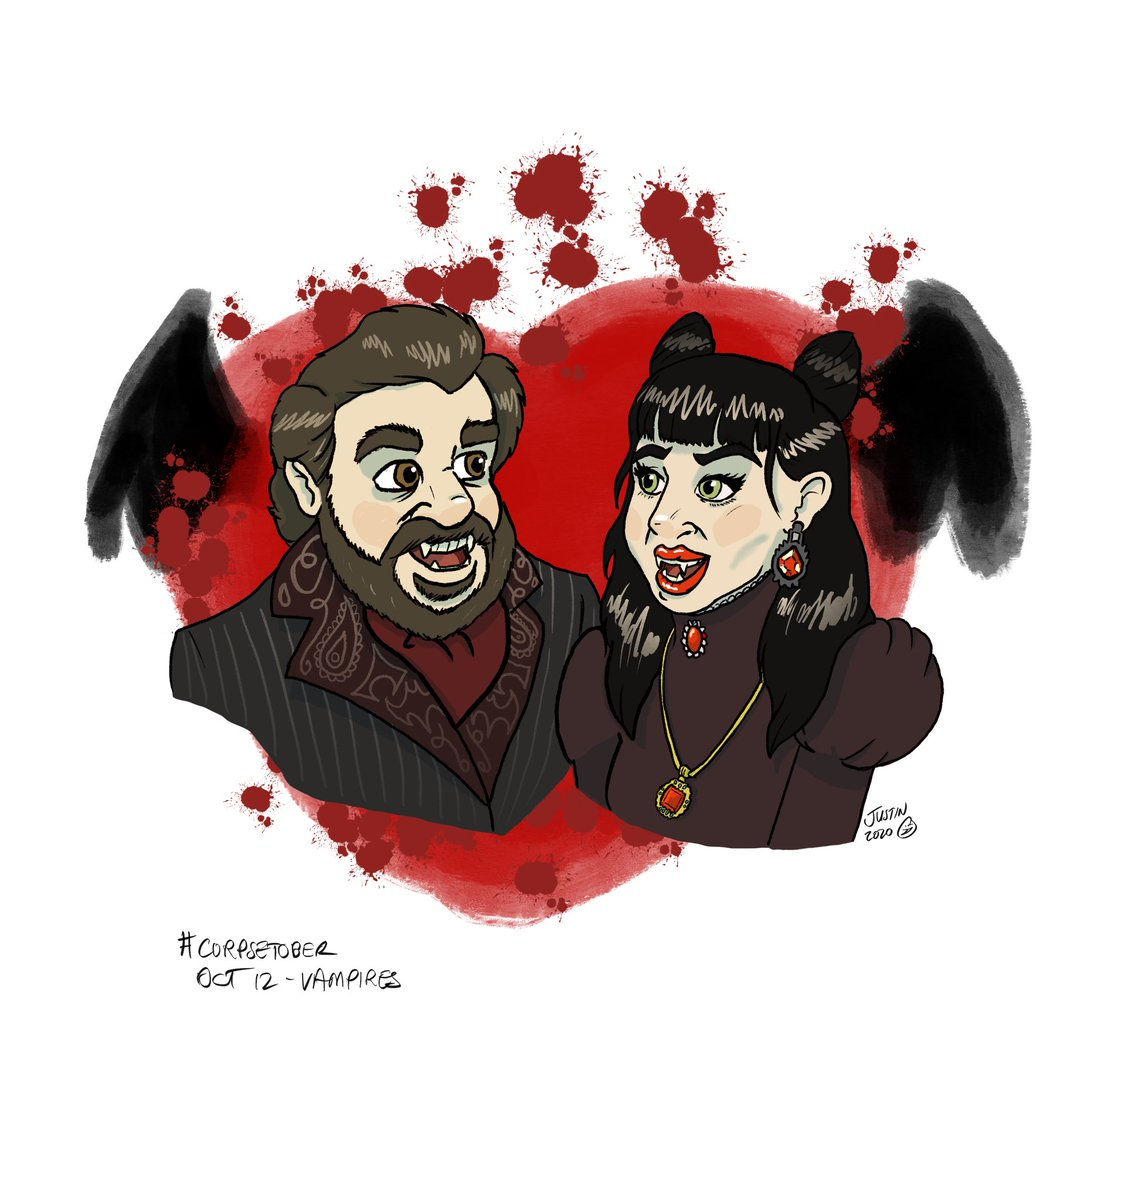 Today's #corpsetober prompt was VAMPIRES What We Do In The Shadows was such a great flick and I'm so glad the show is just as good... now if we only got the sequel... 🤔 #corpsetober2020 #vampires #whatwedointheshadowsfx #mattberry #natasiademetriou #nadja #laszlo #vampire https://t.co/zYCiQnlbDg